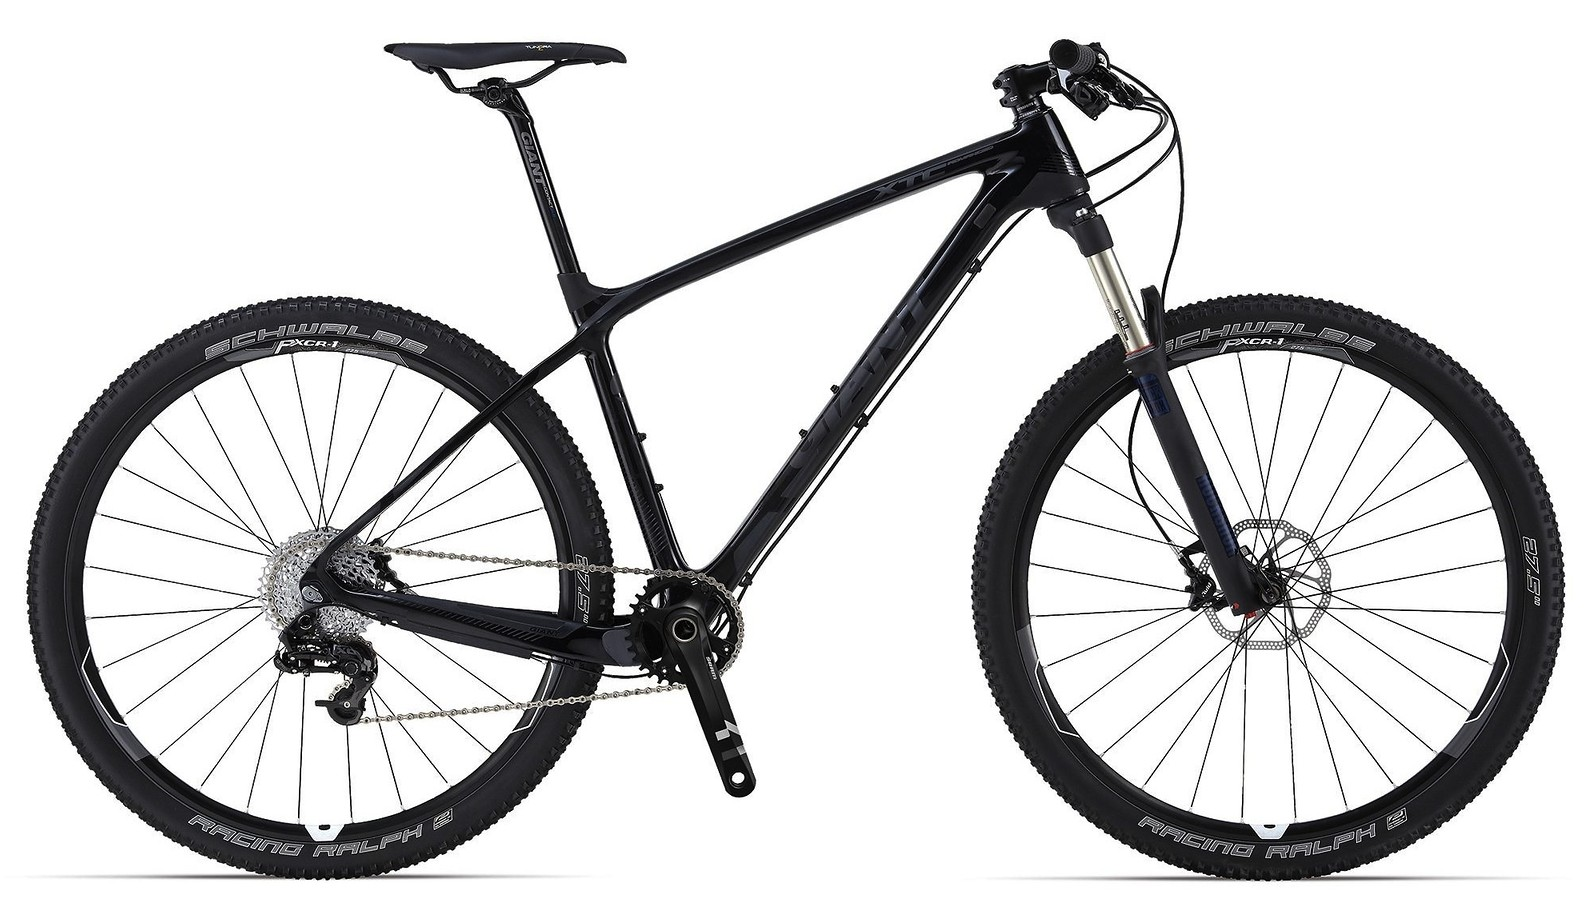 2014 Giant XTC Advanced 27.5 1 Bike XtC_Advanced_27.5_1